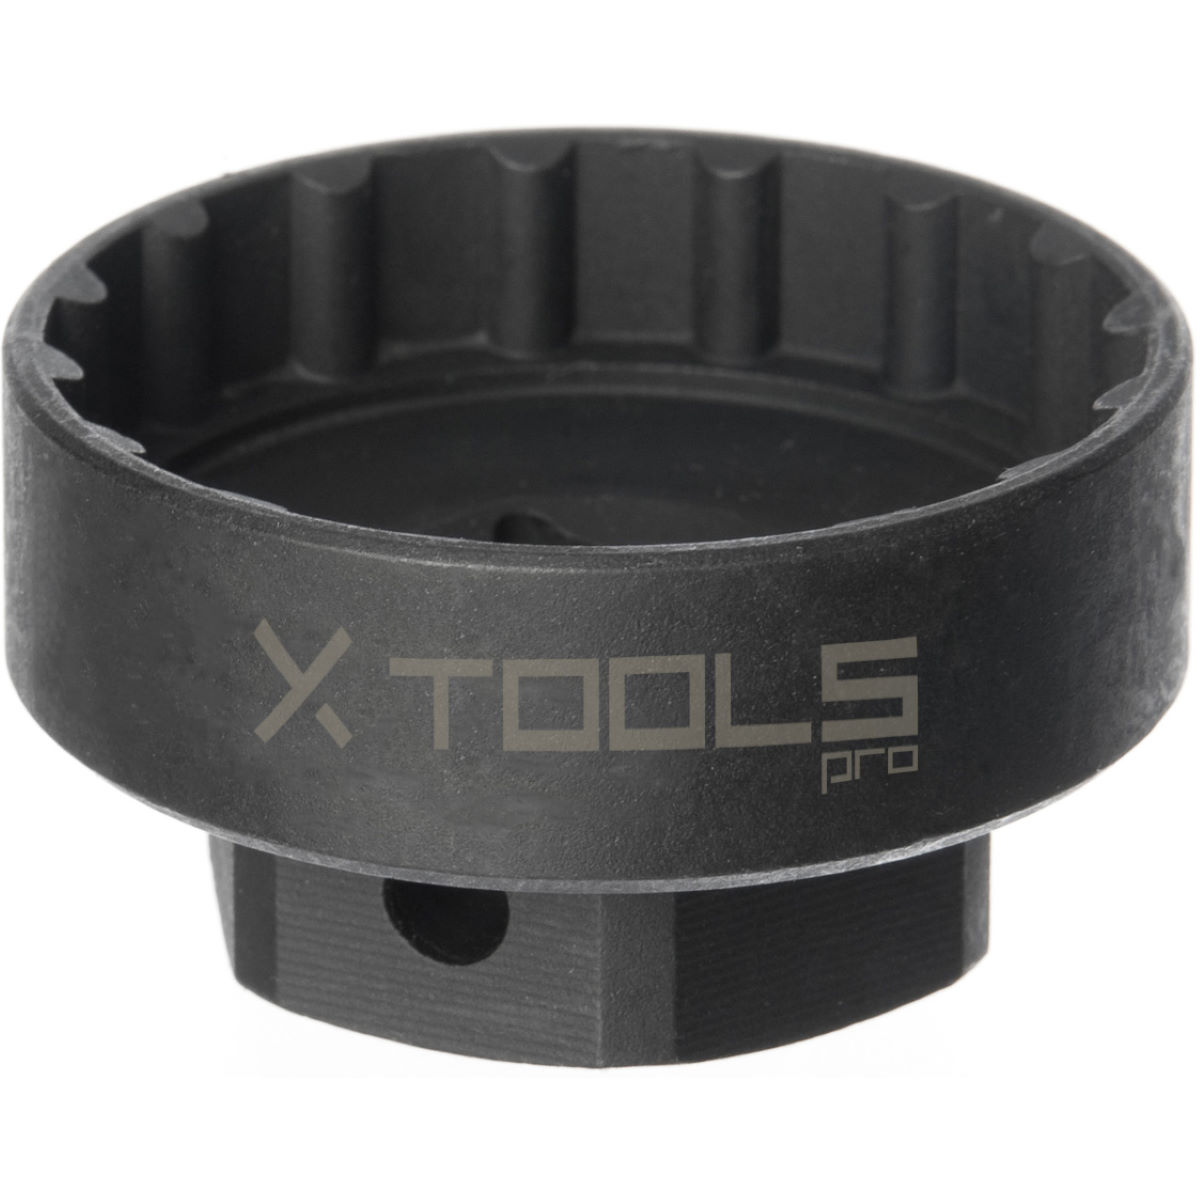 X-Tools Pro Shimano BB Wrench One Size